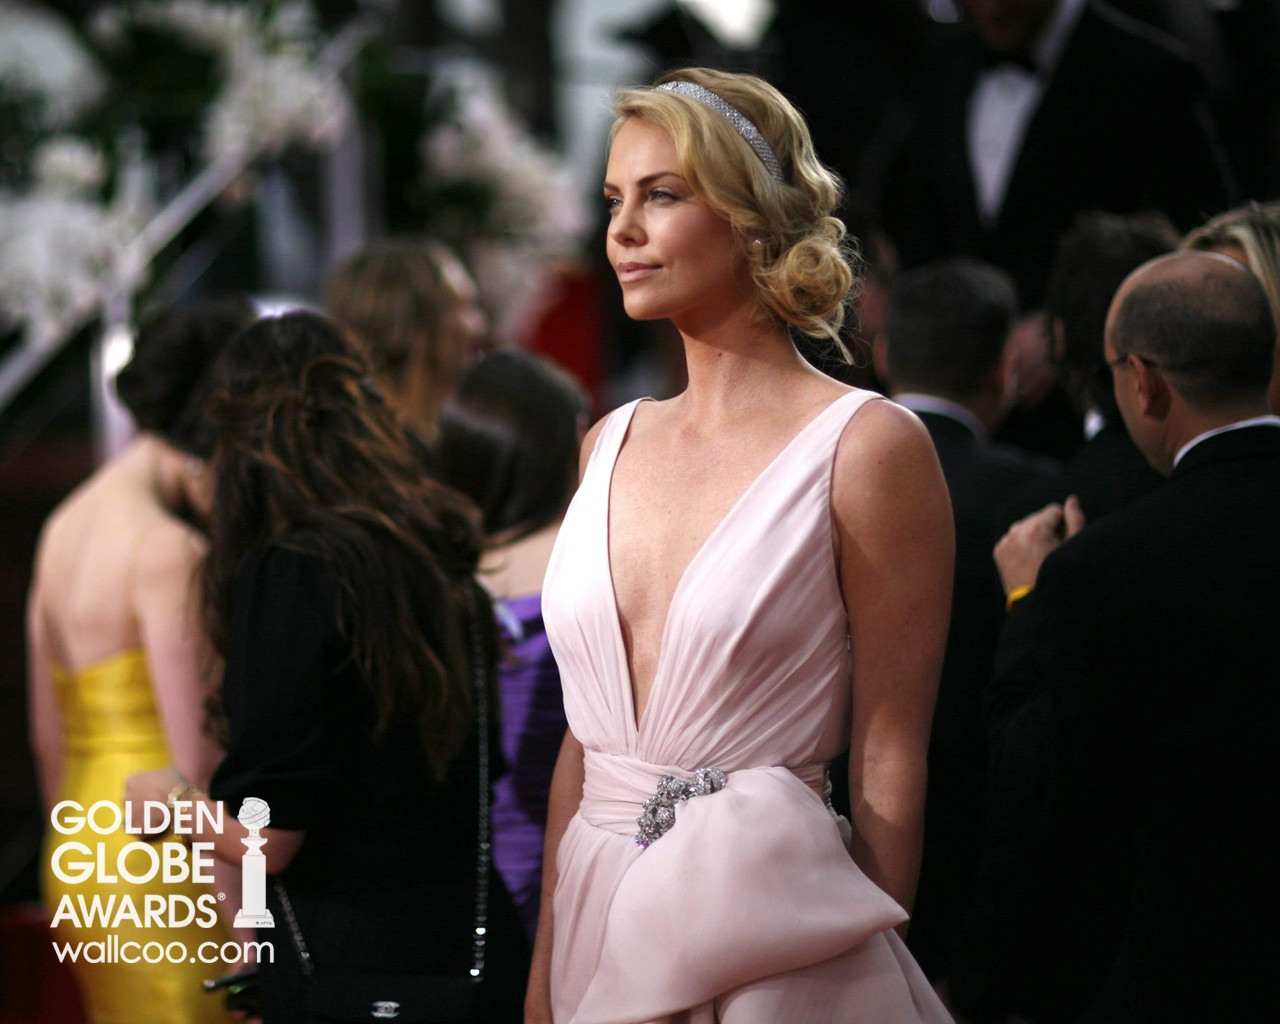 Charlize & #; Theron Charlize Theron 31173